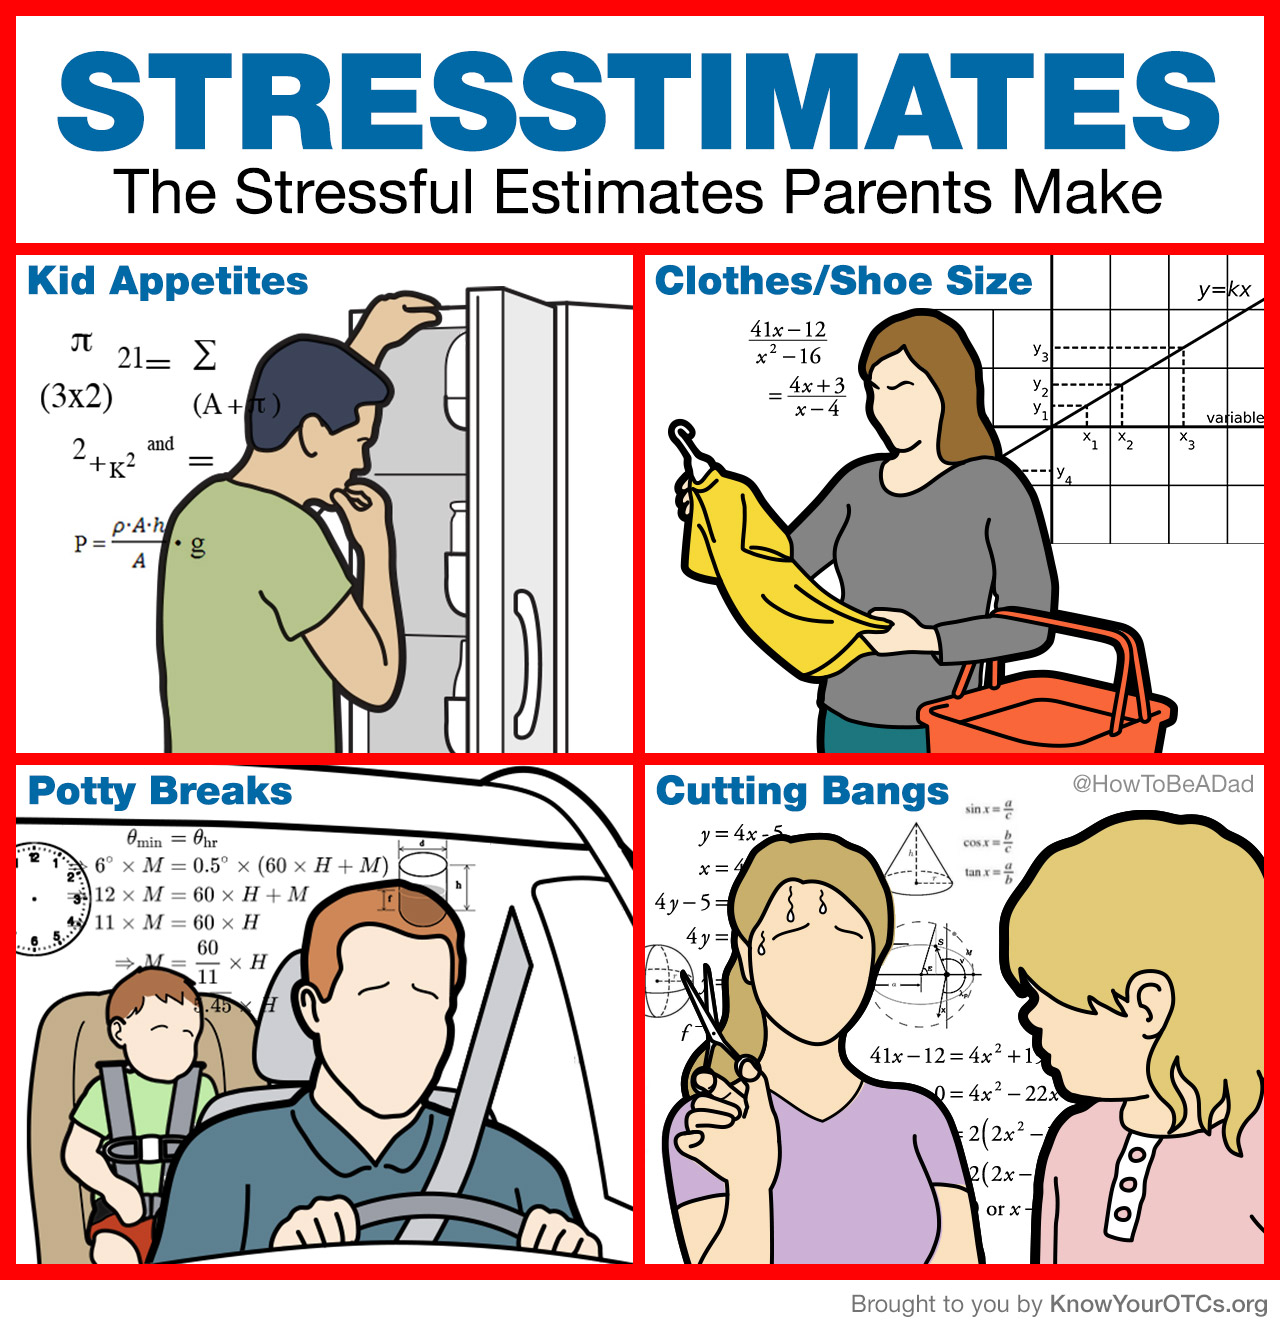 Stresstimates the funny stressful estimates parents make